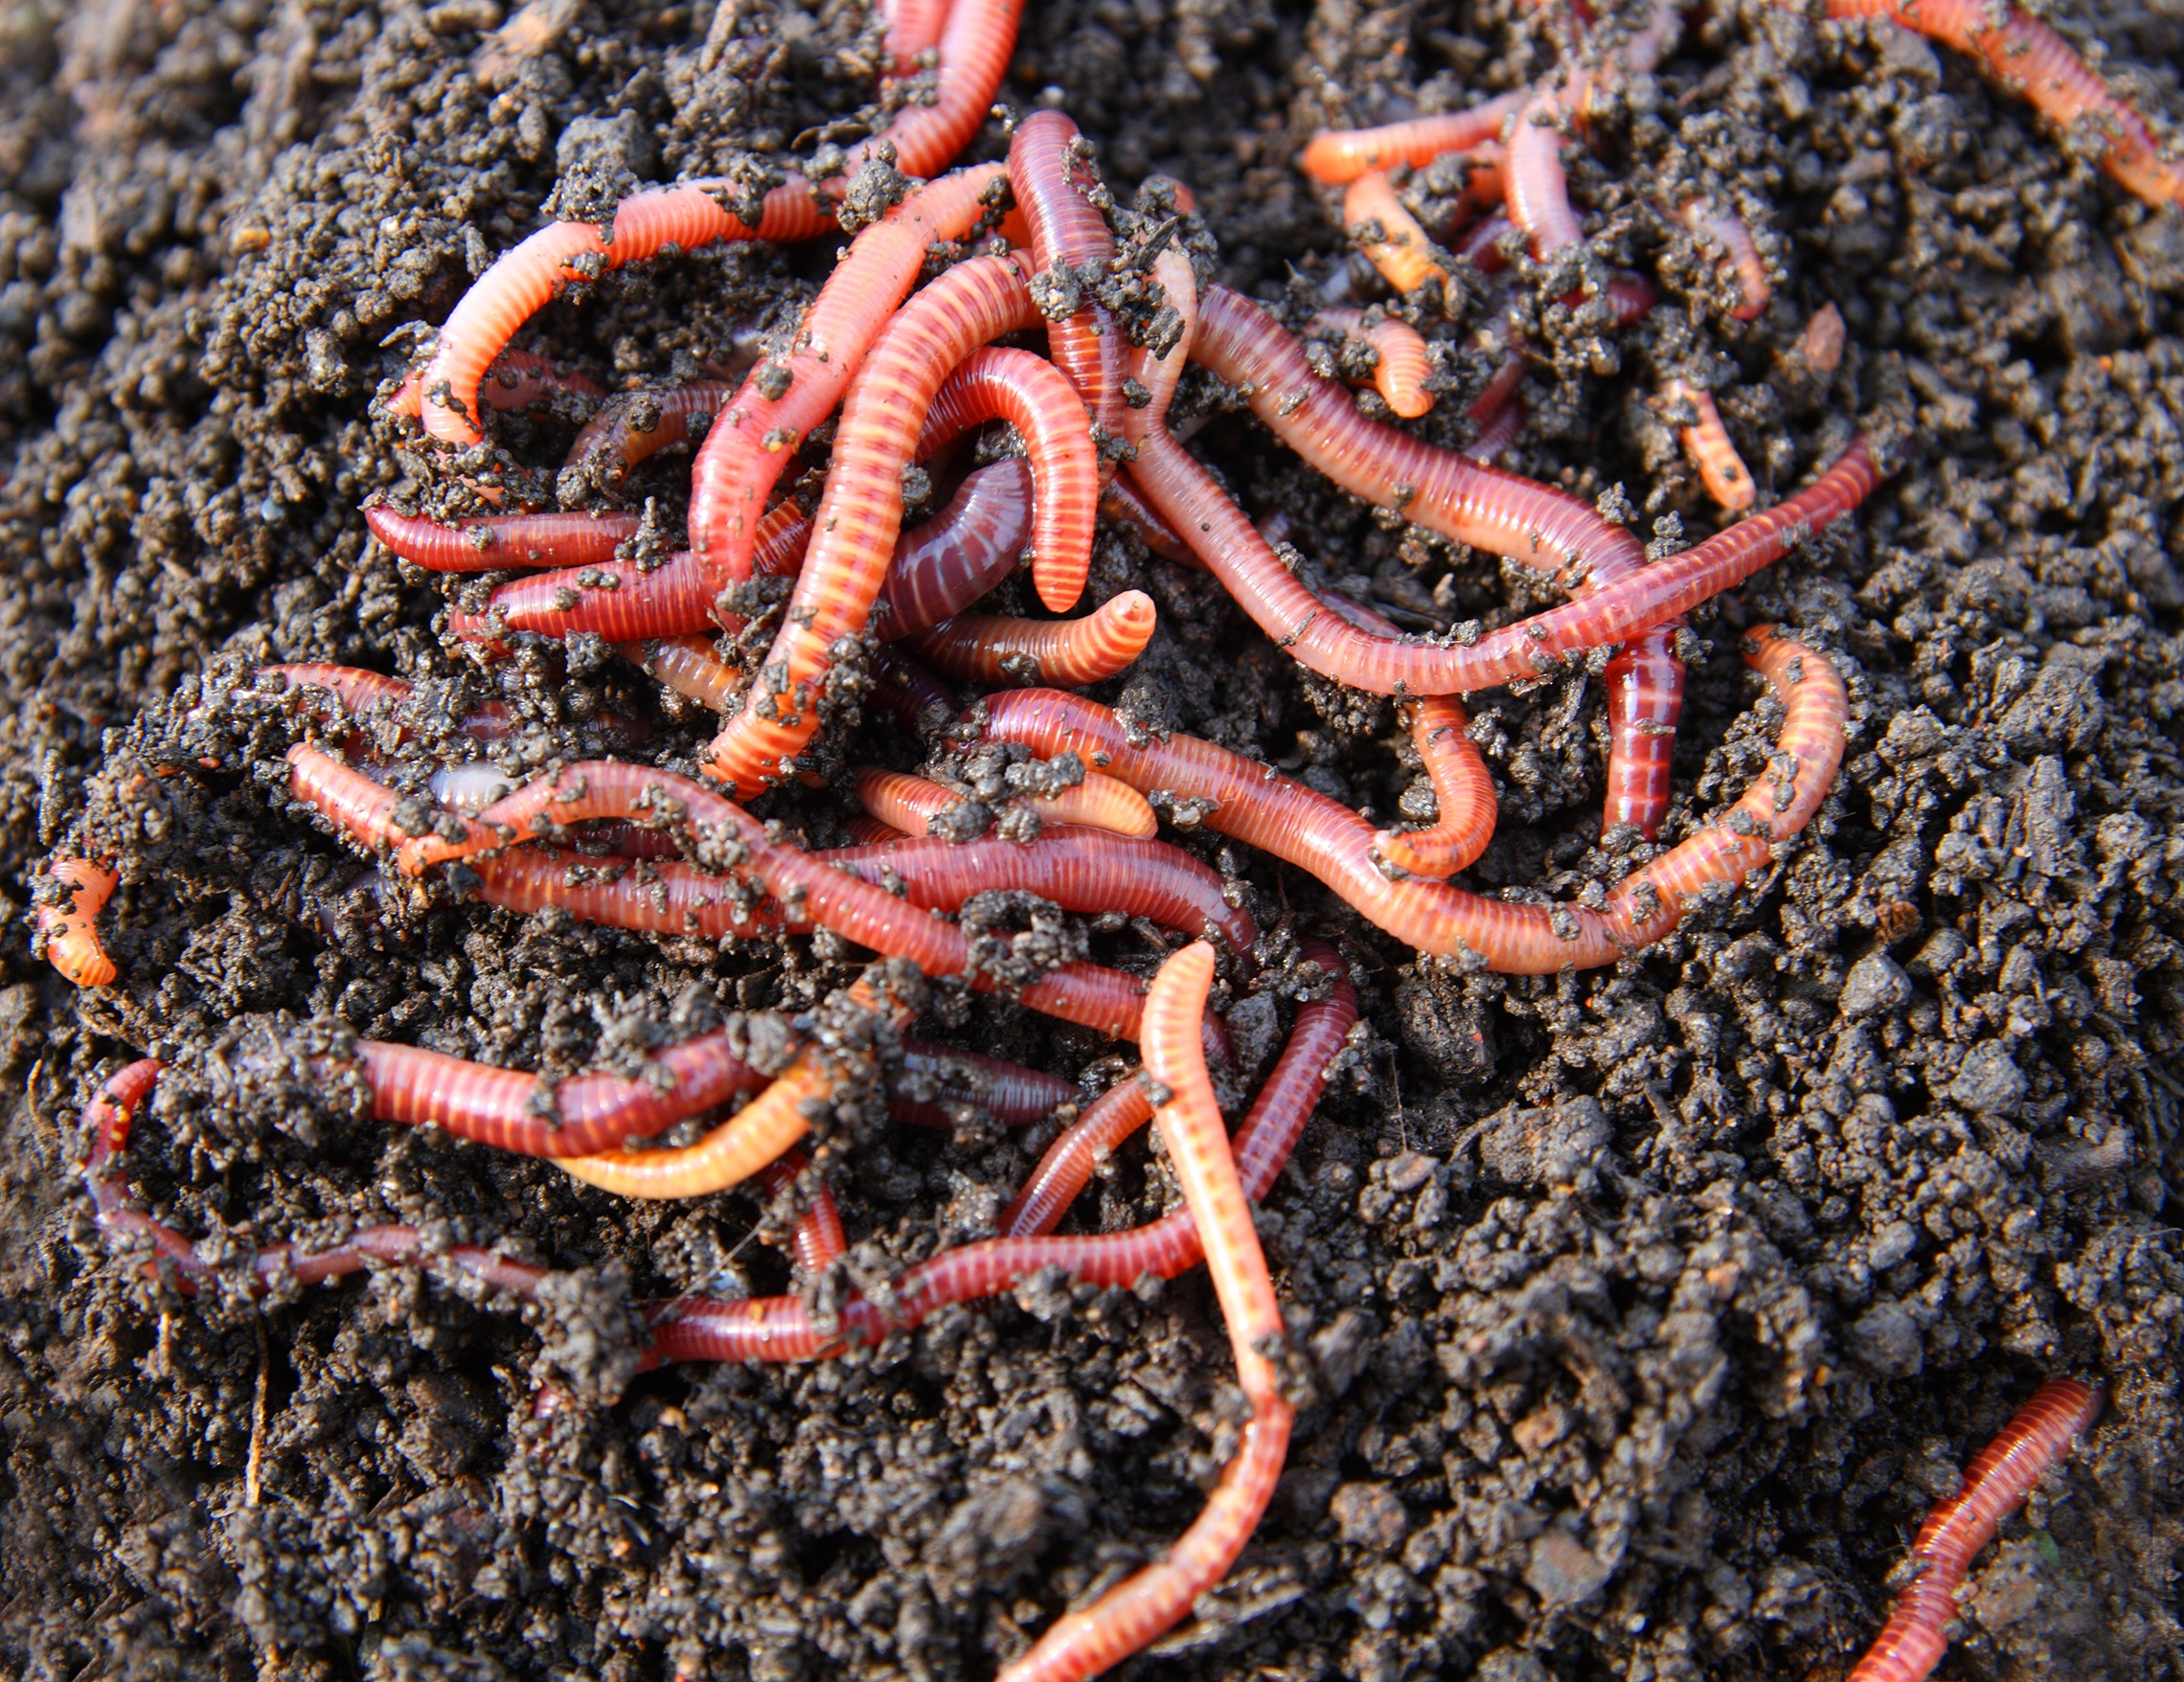 Red worms in a composting pile.